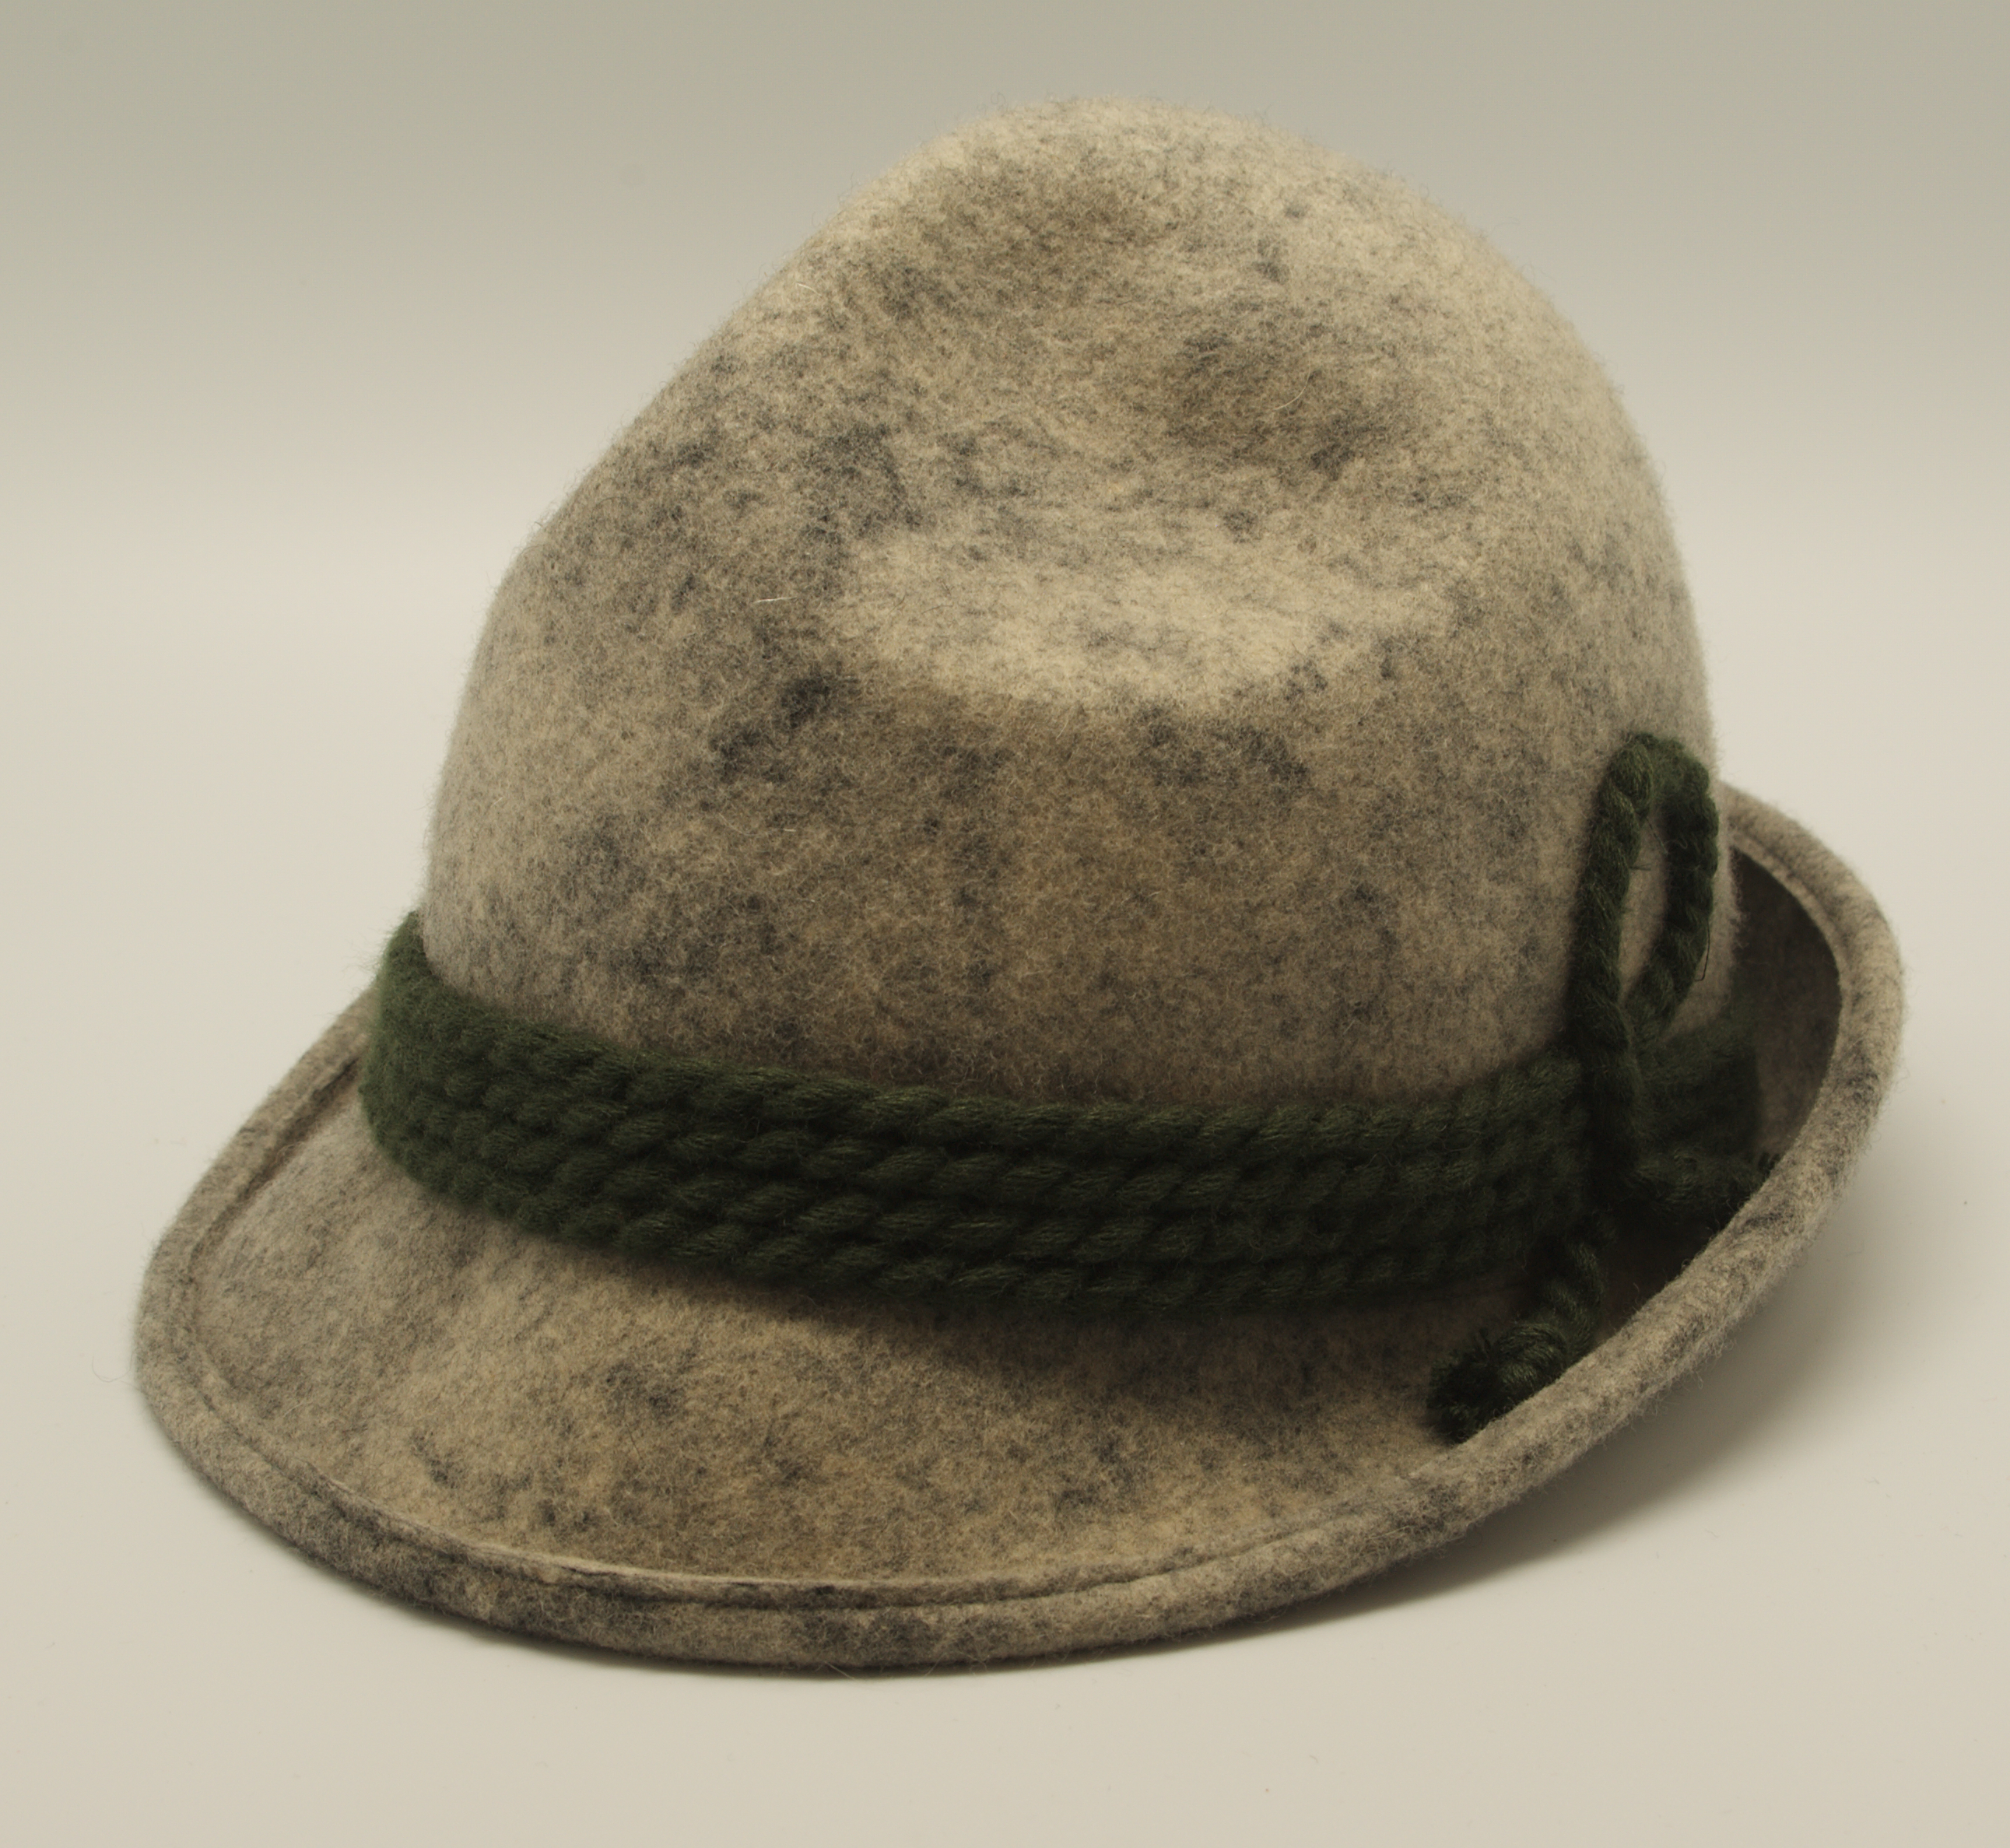 b069c87d544 Tyrolean hat - Wikipedia